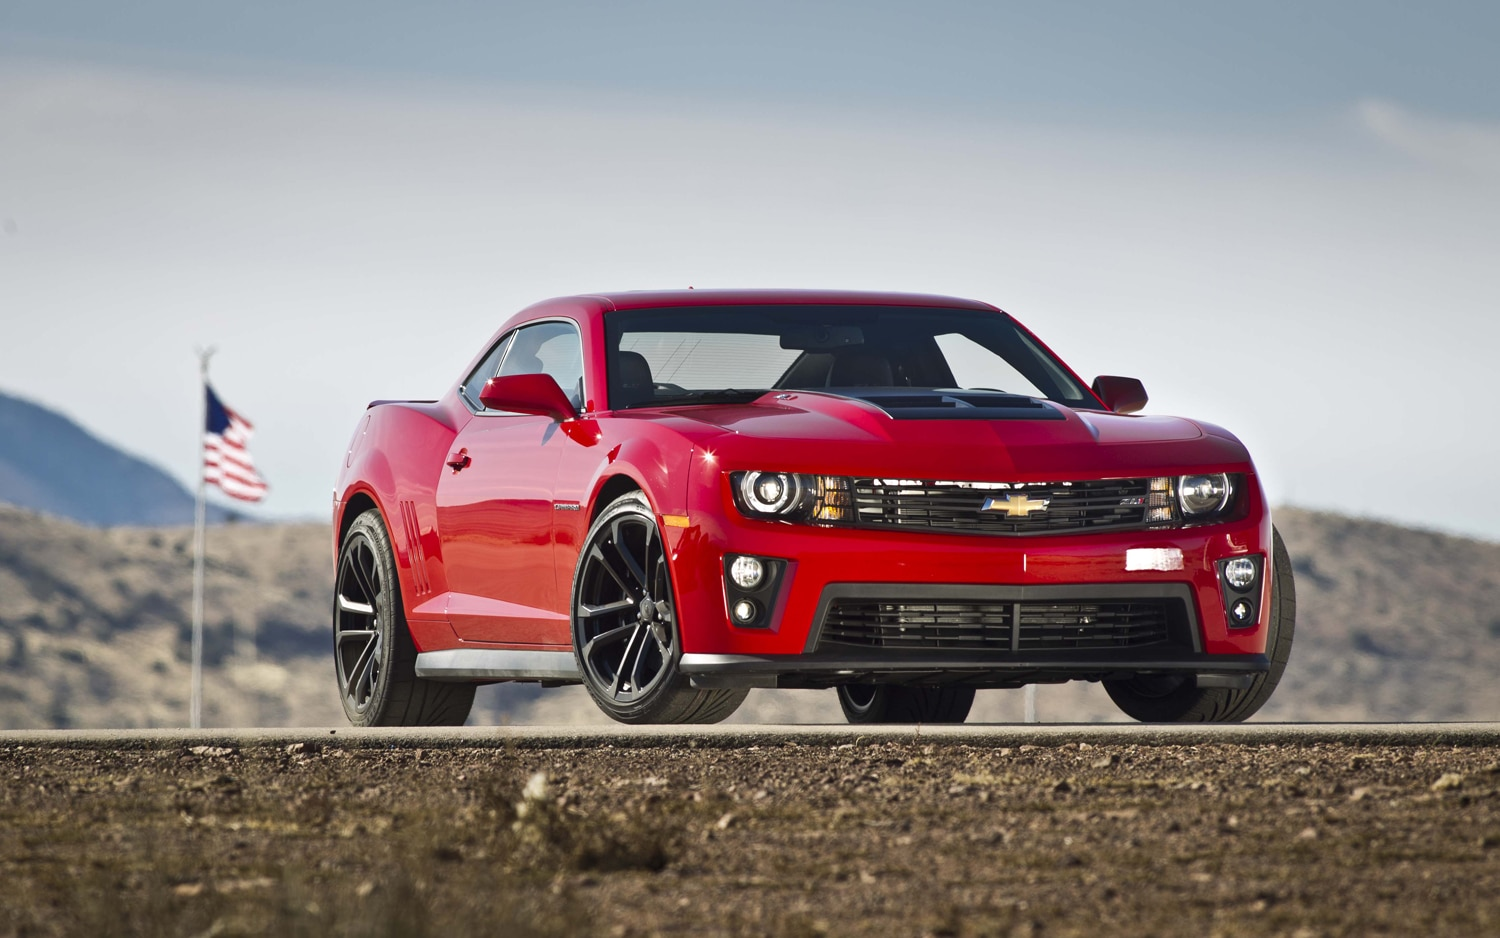 2012 Chevrolet Camaro Zl1 Vs 2013 Ford Shelby Gt500 At